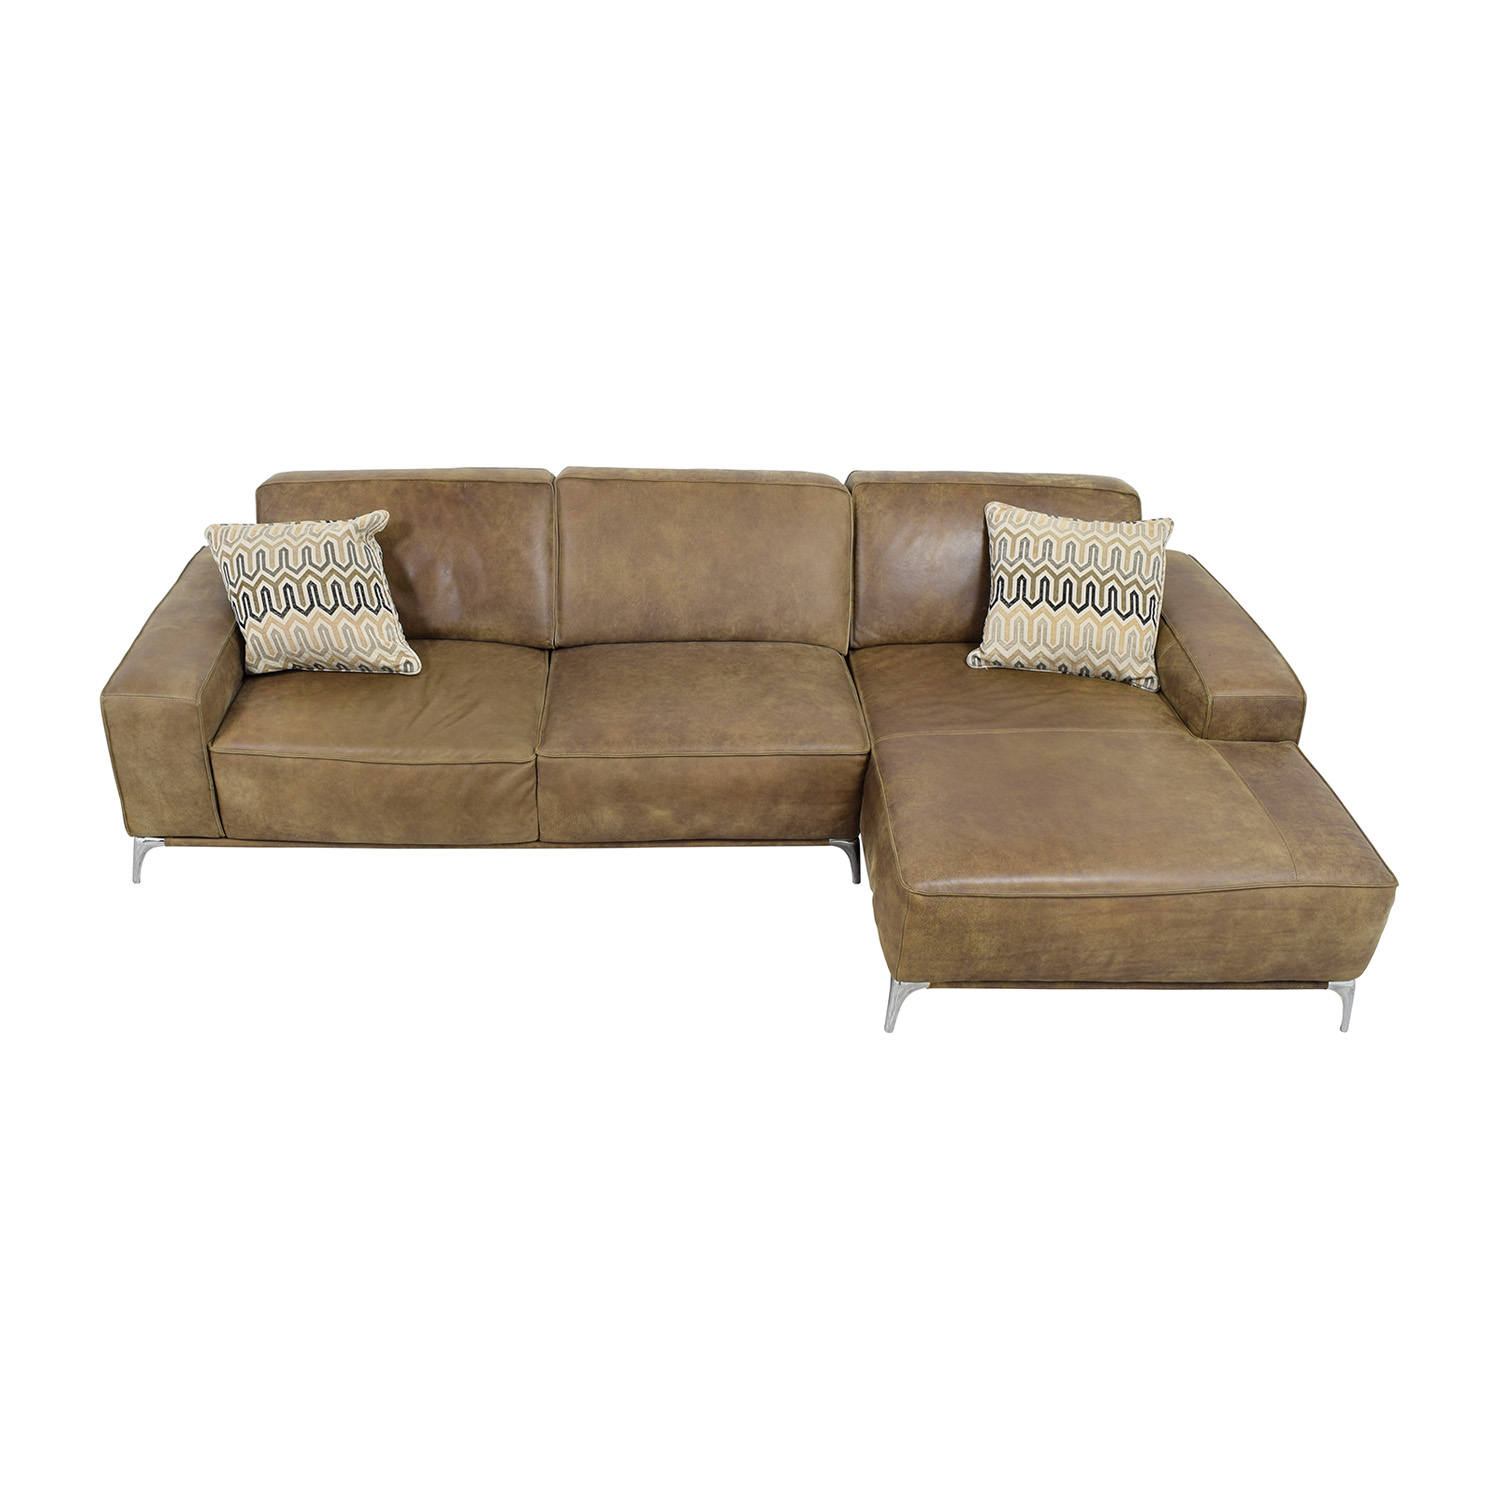 buy Giuseppe Nicolette Tan Leather Sectional Giuseppe Nicolette Sofas